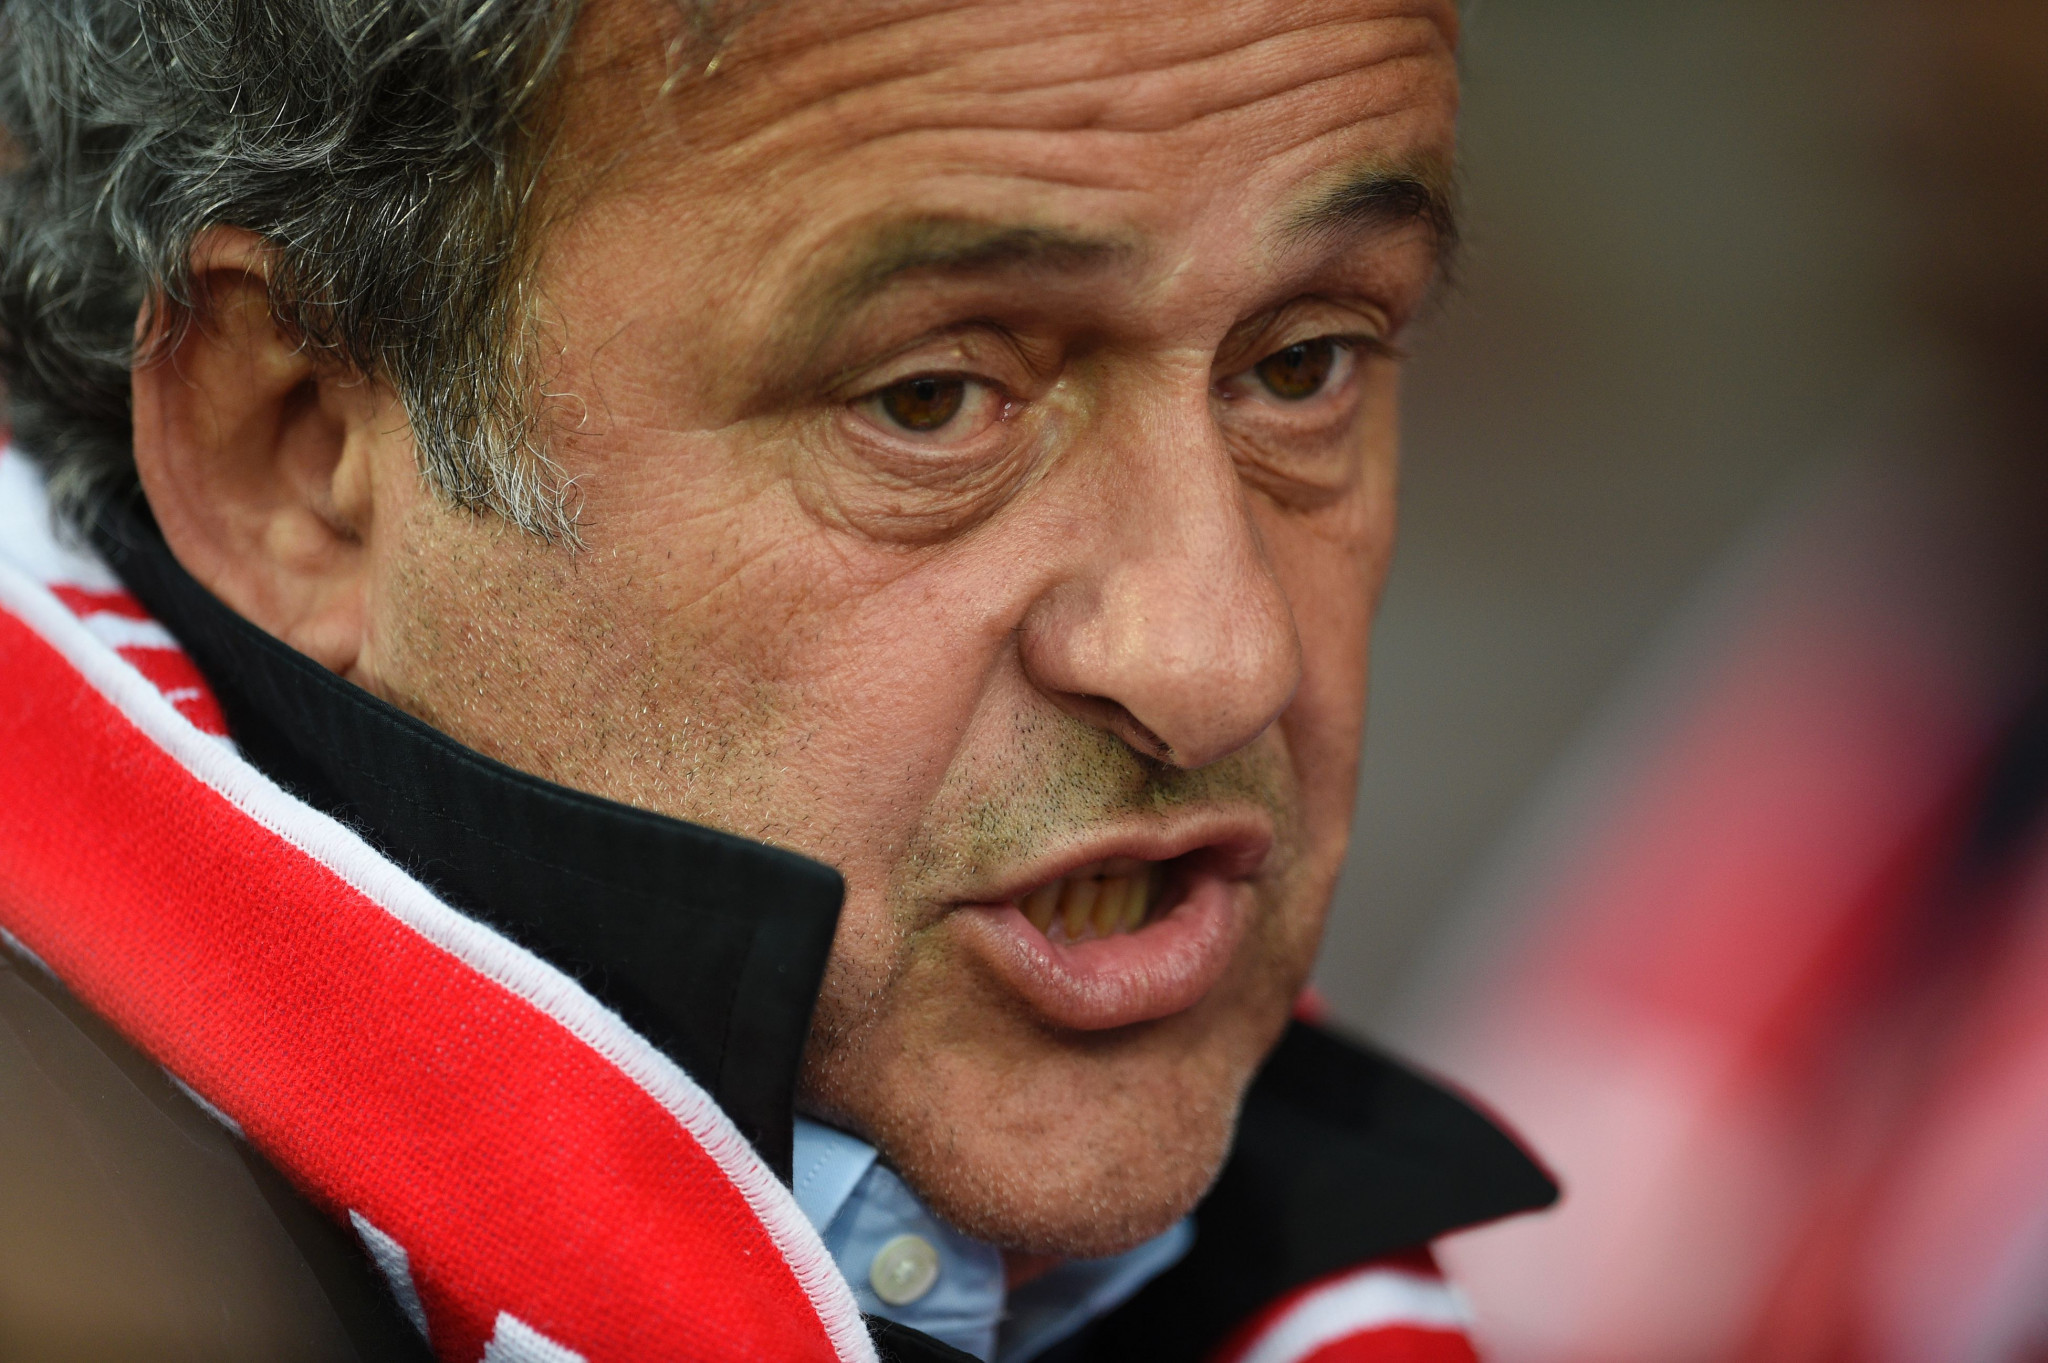 Platini detained as part of investigation into decision to award 2022 World Cup to Qatar